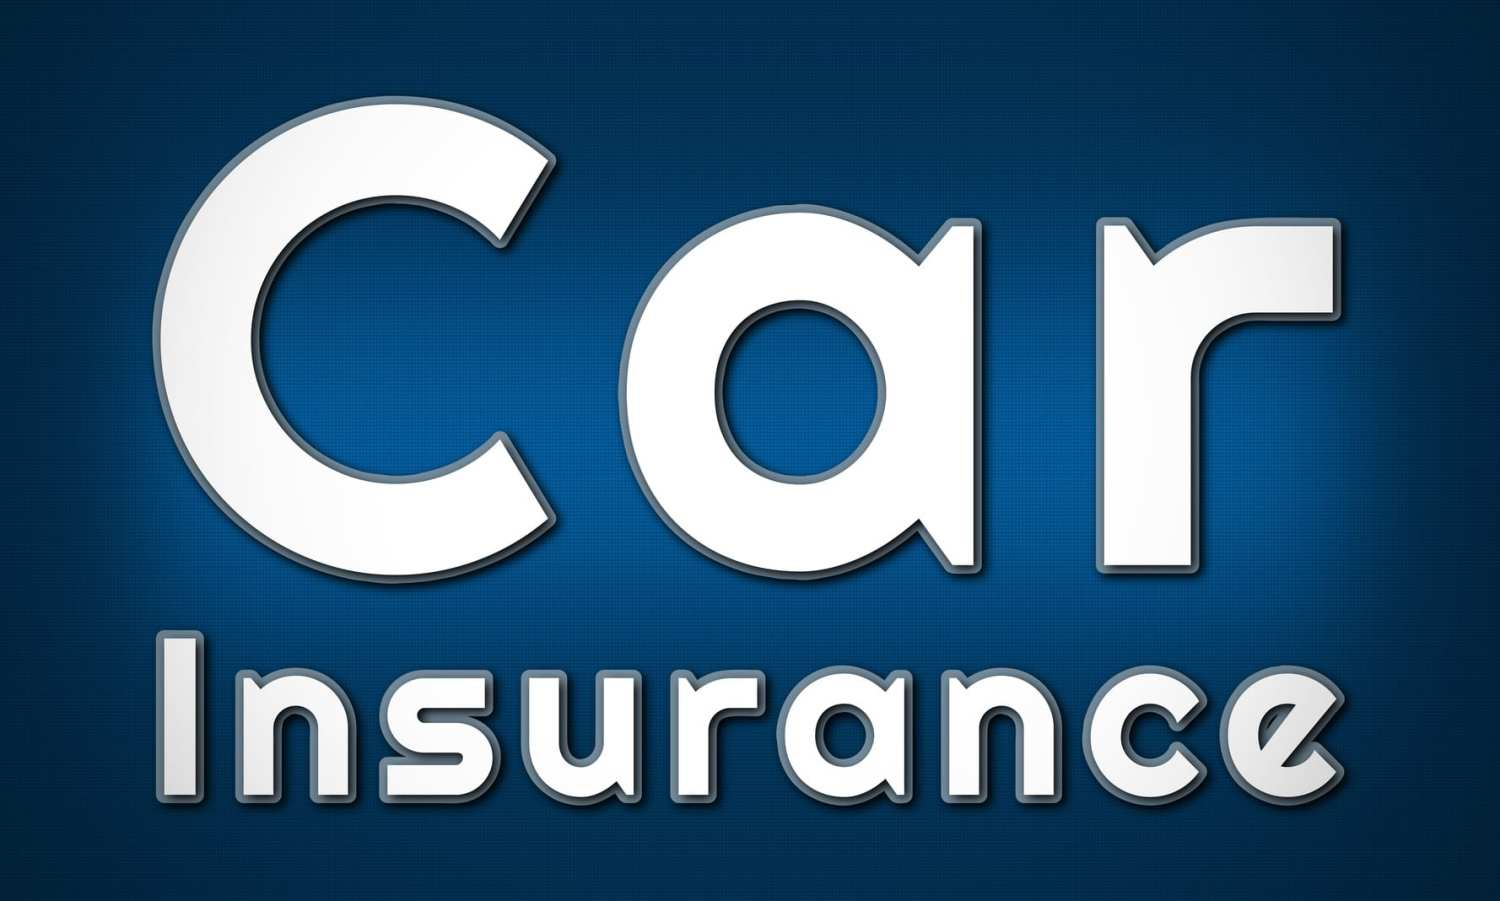 Compare Car Insurance Quotes Fast And Secure Einsurance